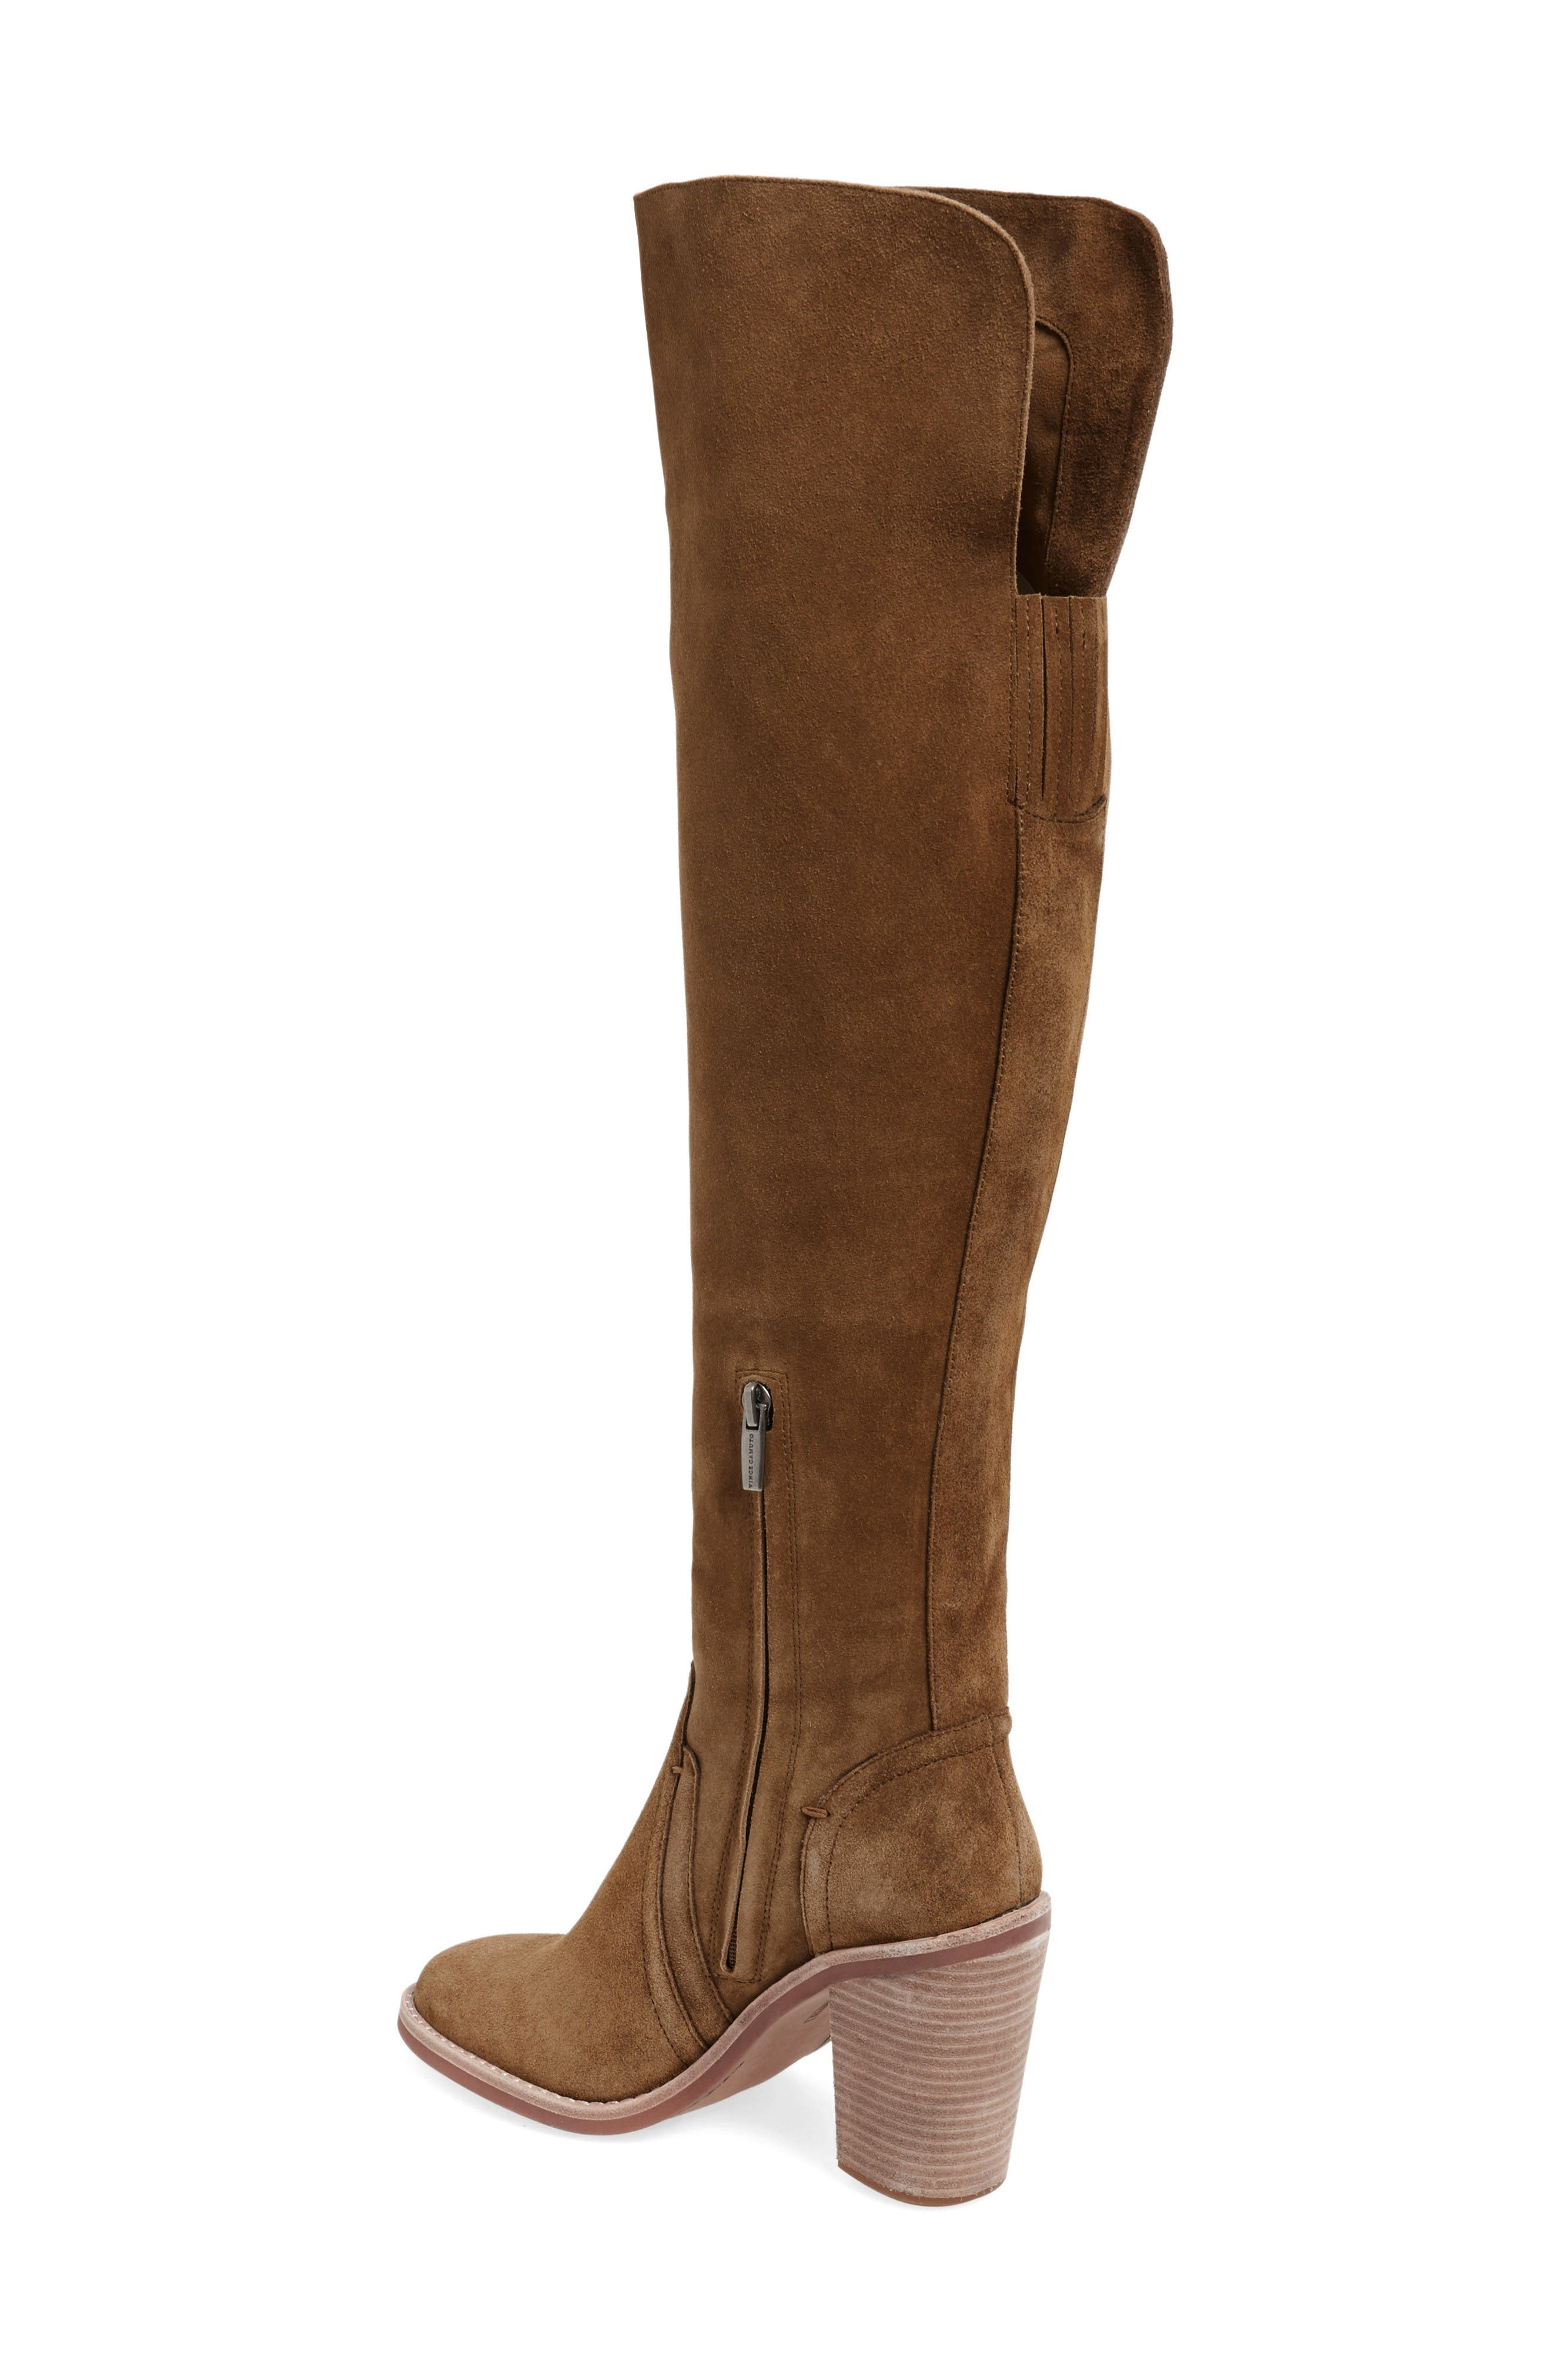 Alternate Image 2  - Vince Camuto 'Melaya' Over the Knee Boot (Women) (Nordstrom Exclusive)